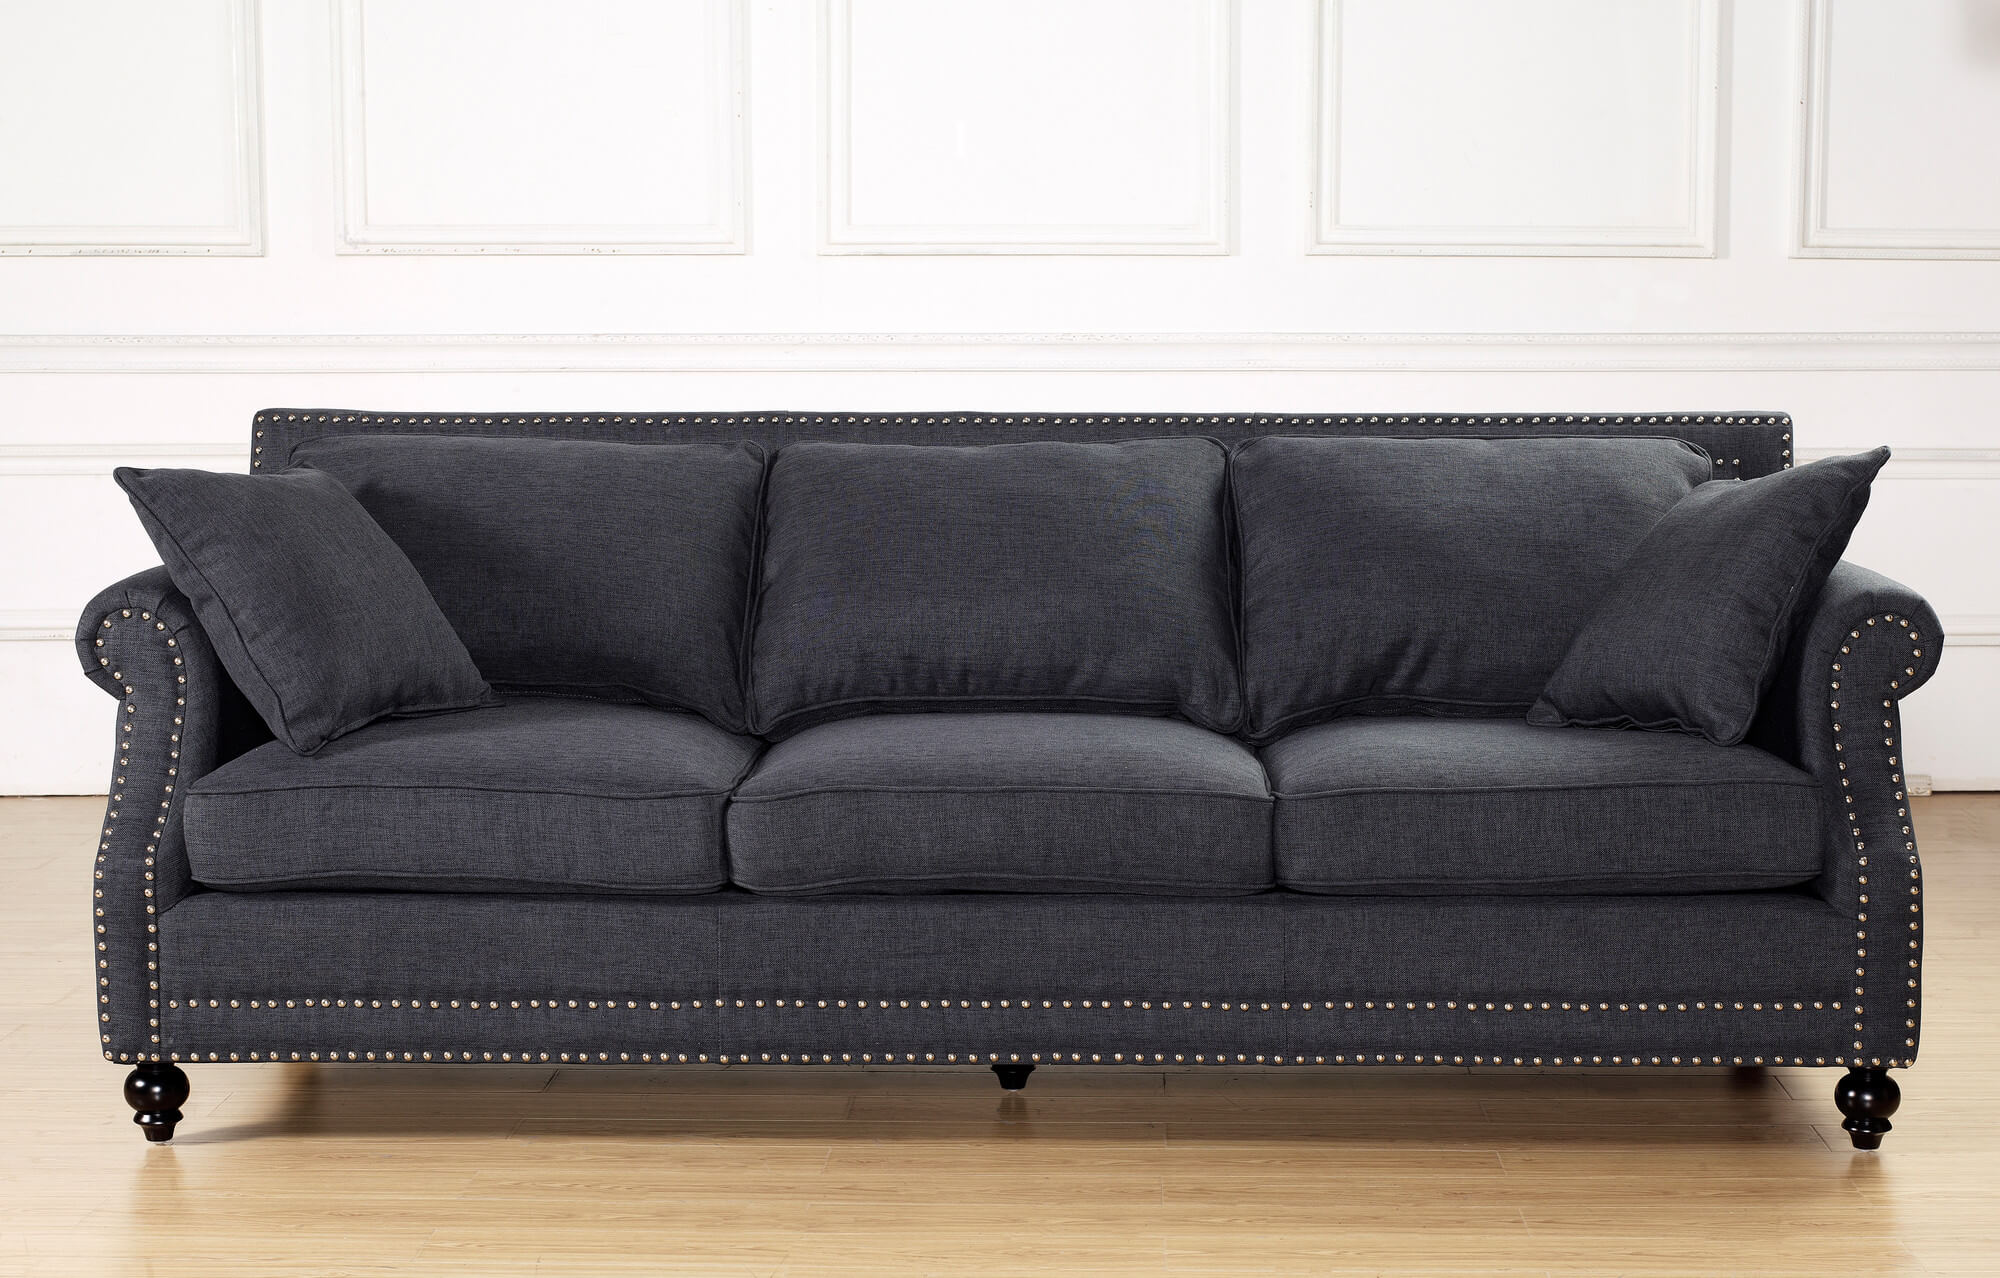 This very contemporary sofa in a deep charcoal linen is detailed with a copper nail trim. The birch frame and legs are painted black to keep with a contemporary style. The high backrest and reposition-able cushions make this sofa an ultra-comfortable and plush option with a ton of style.